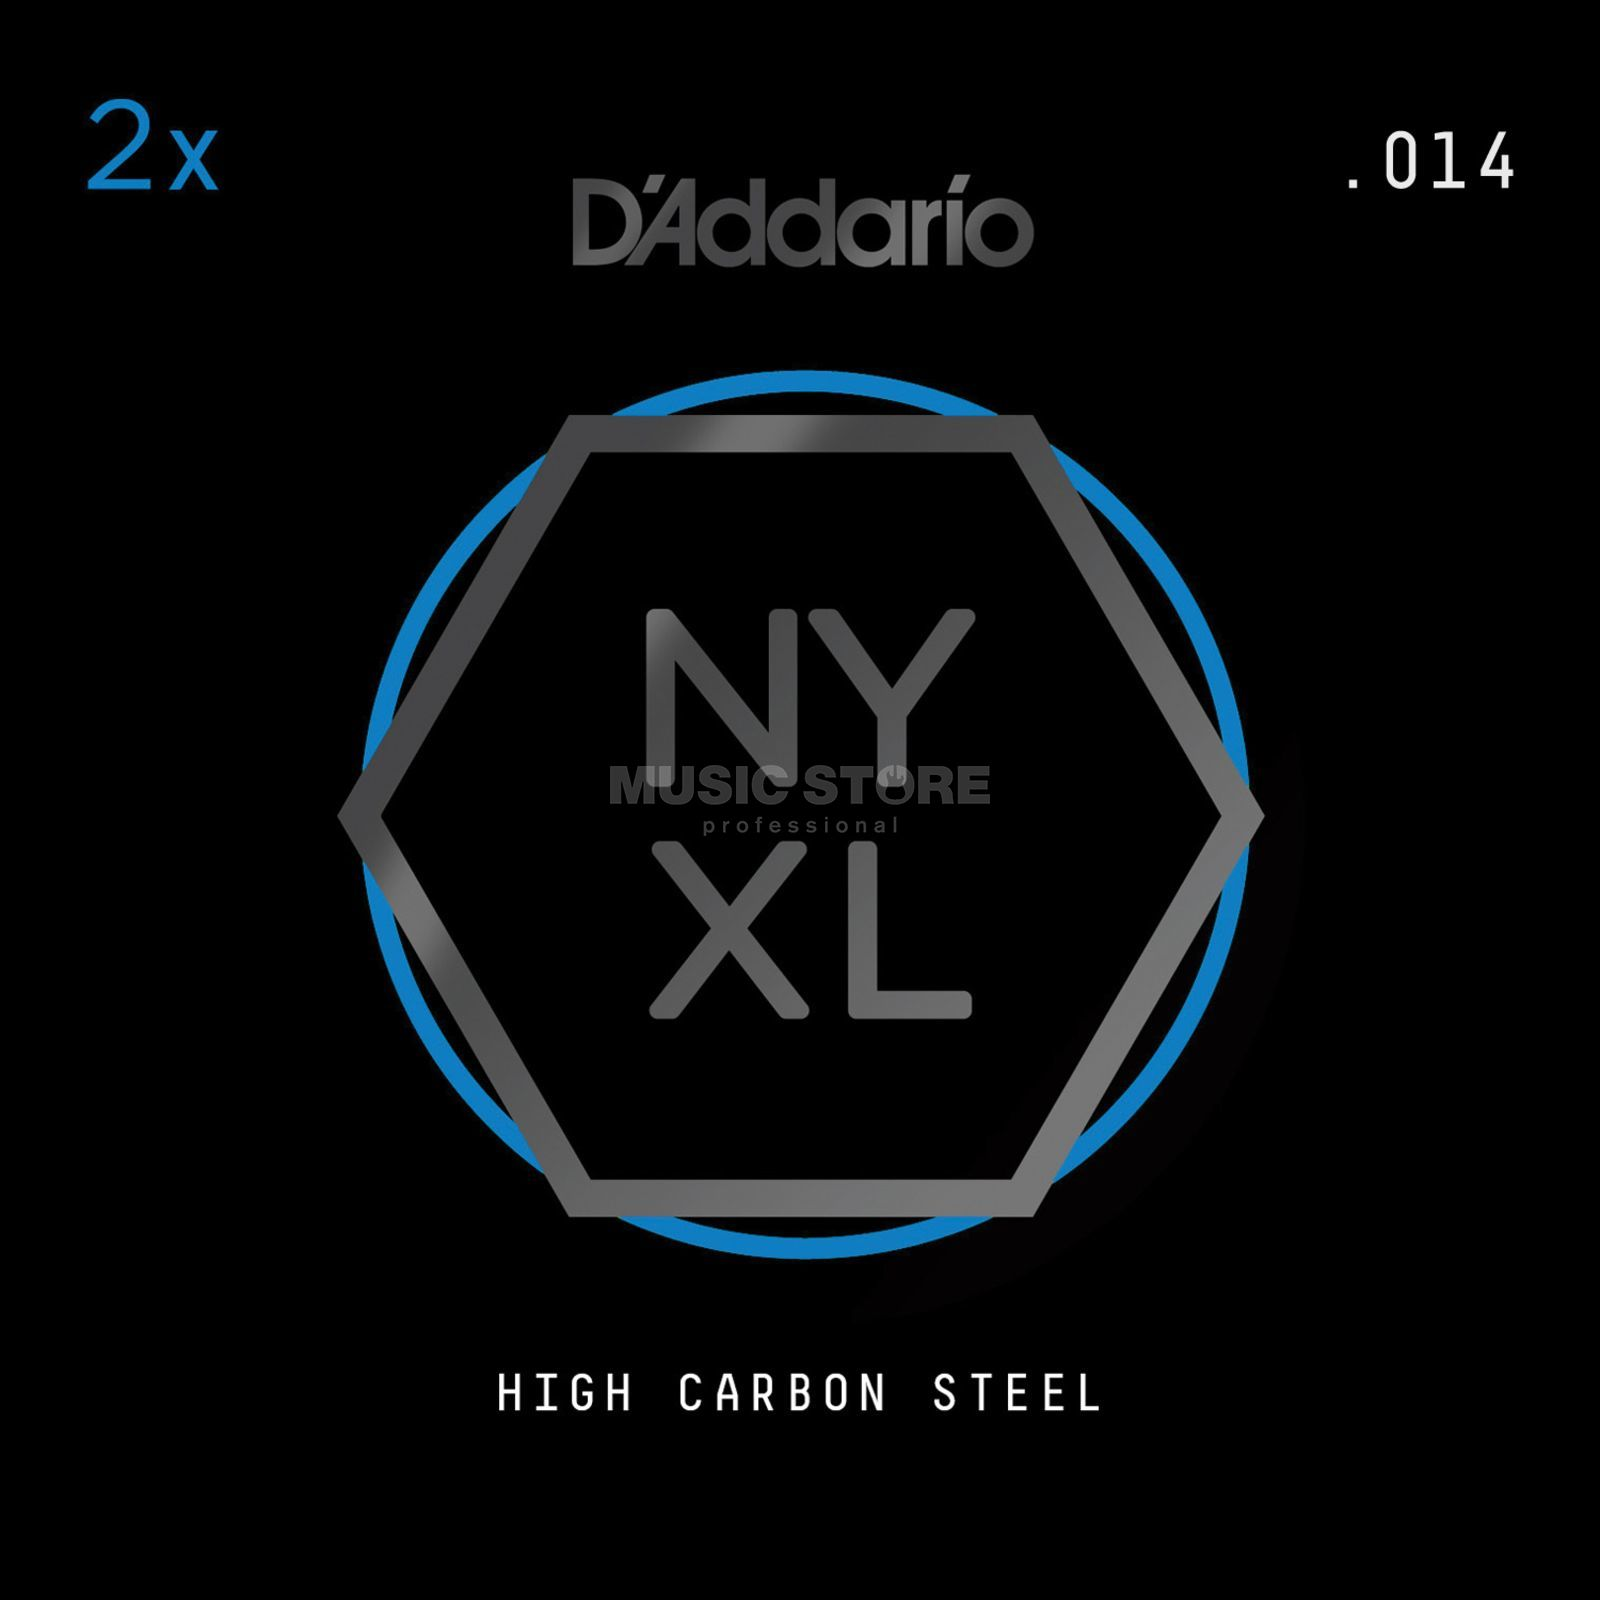 D'Addario NYPL014 Plain Single String 2-Pack - High Carbon Steel Produktbillede